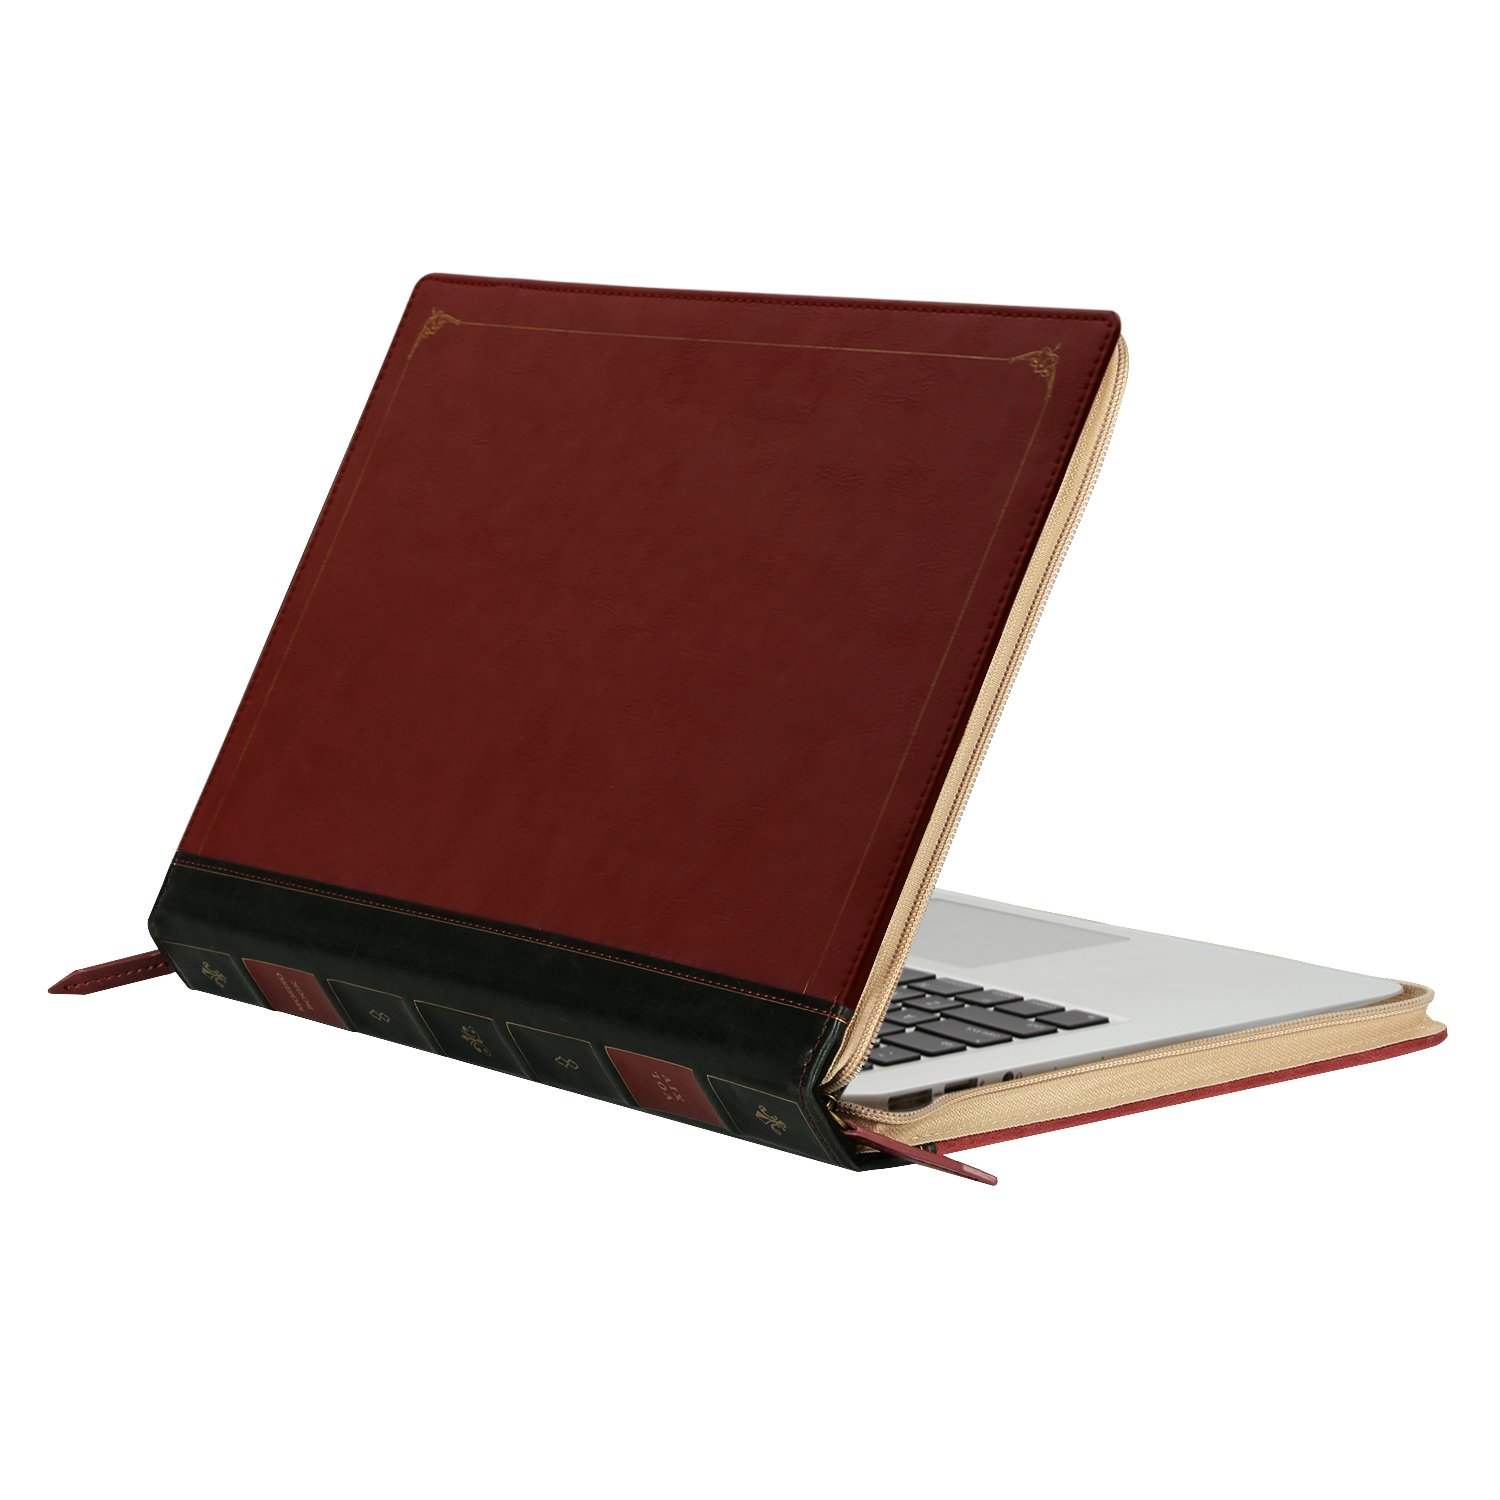 MOSISO PU Leather Sleeve Only Compatible with MacBook Air 13 Inch A1466 / A1369 (Older Version Release 2010-2017), Vintage Classic Zippered Case Premium Book Cover, Wine Red